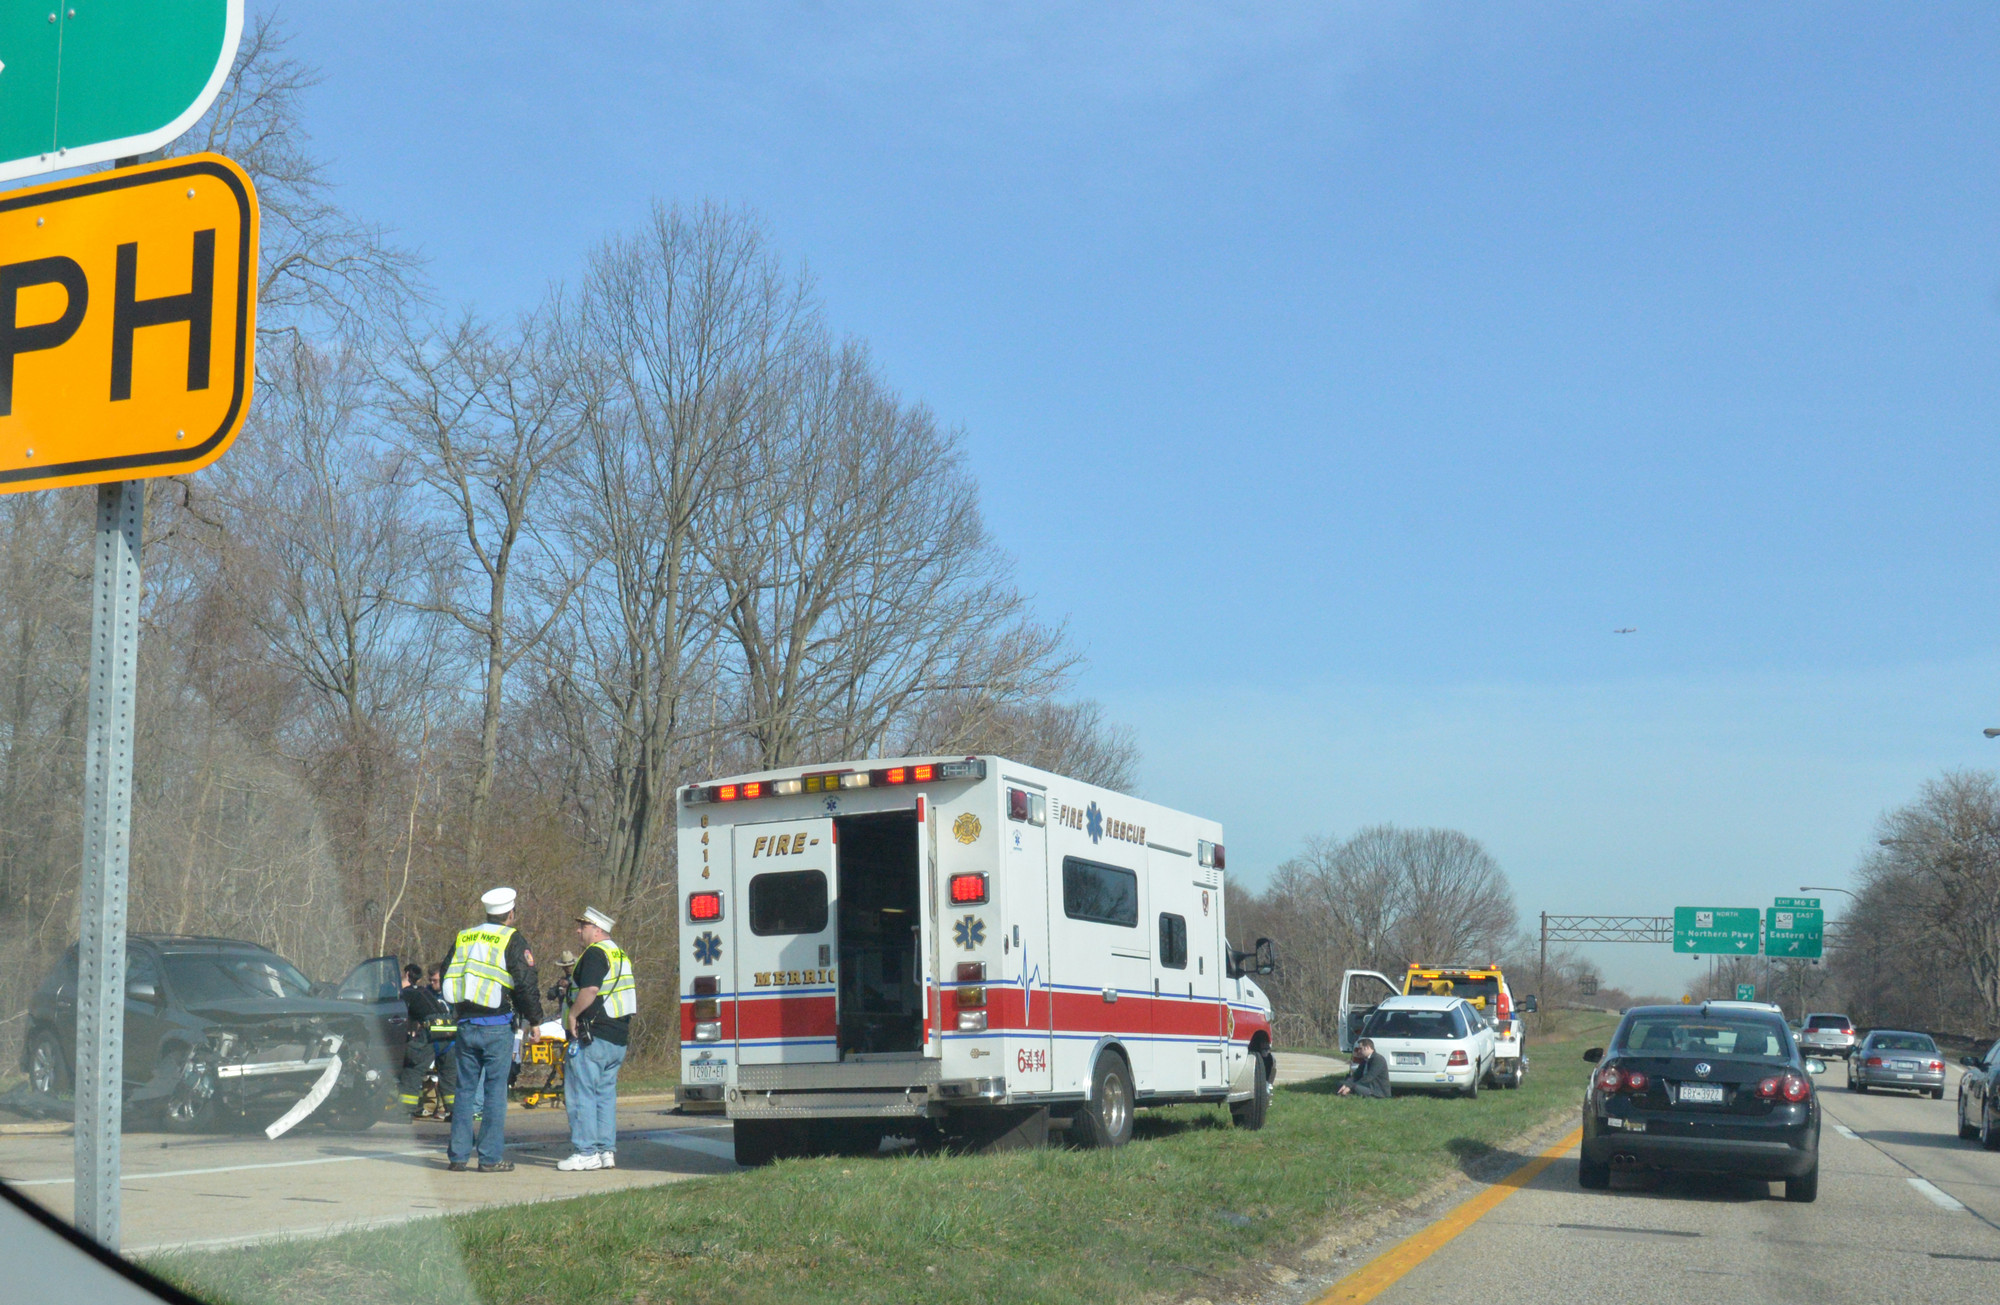 An auto accident tied up traffic on the Meadowbrook Parkway Tuesday morning, April 9.